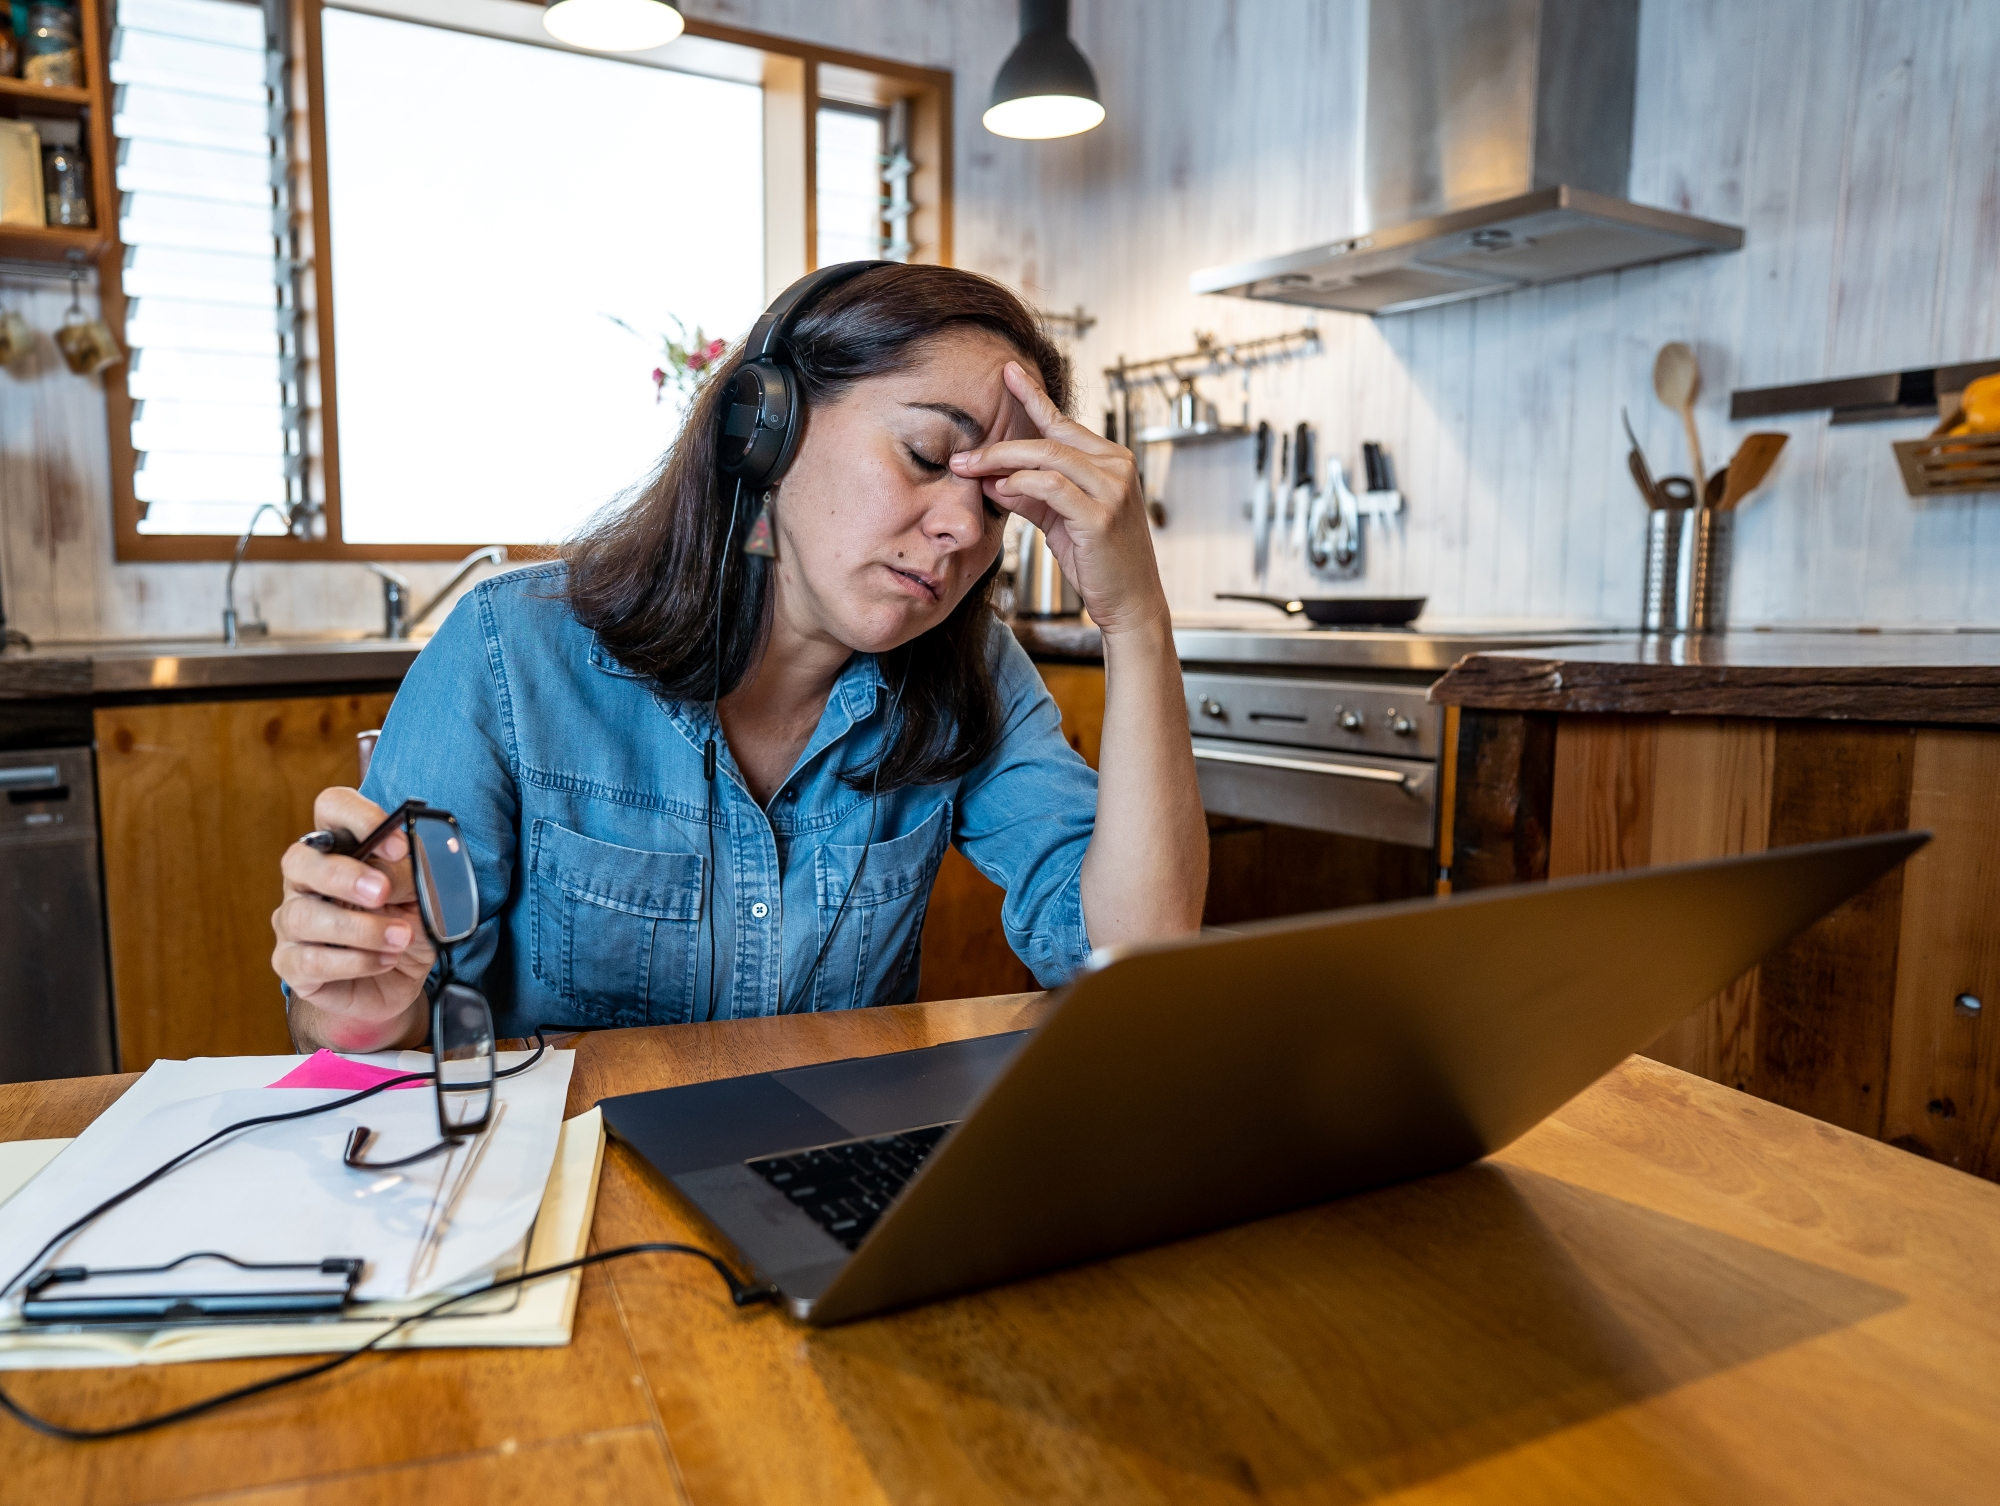 Stressed woman working from home, fingers on temple, laptop at kitchen table with papers everywhere